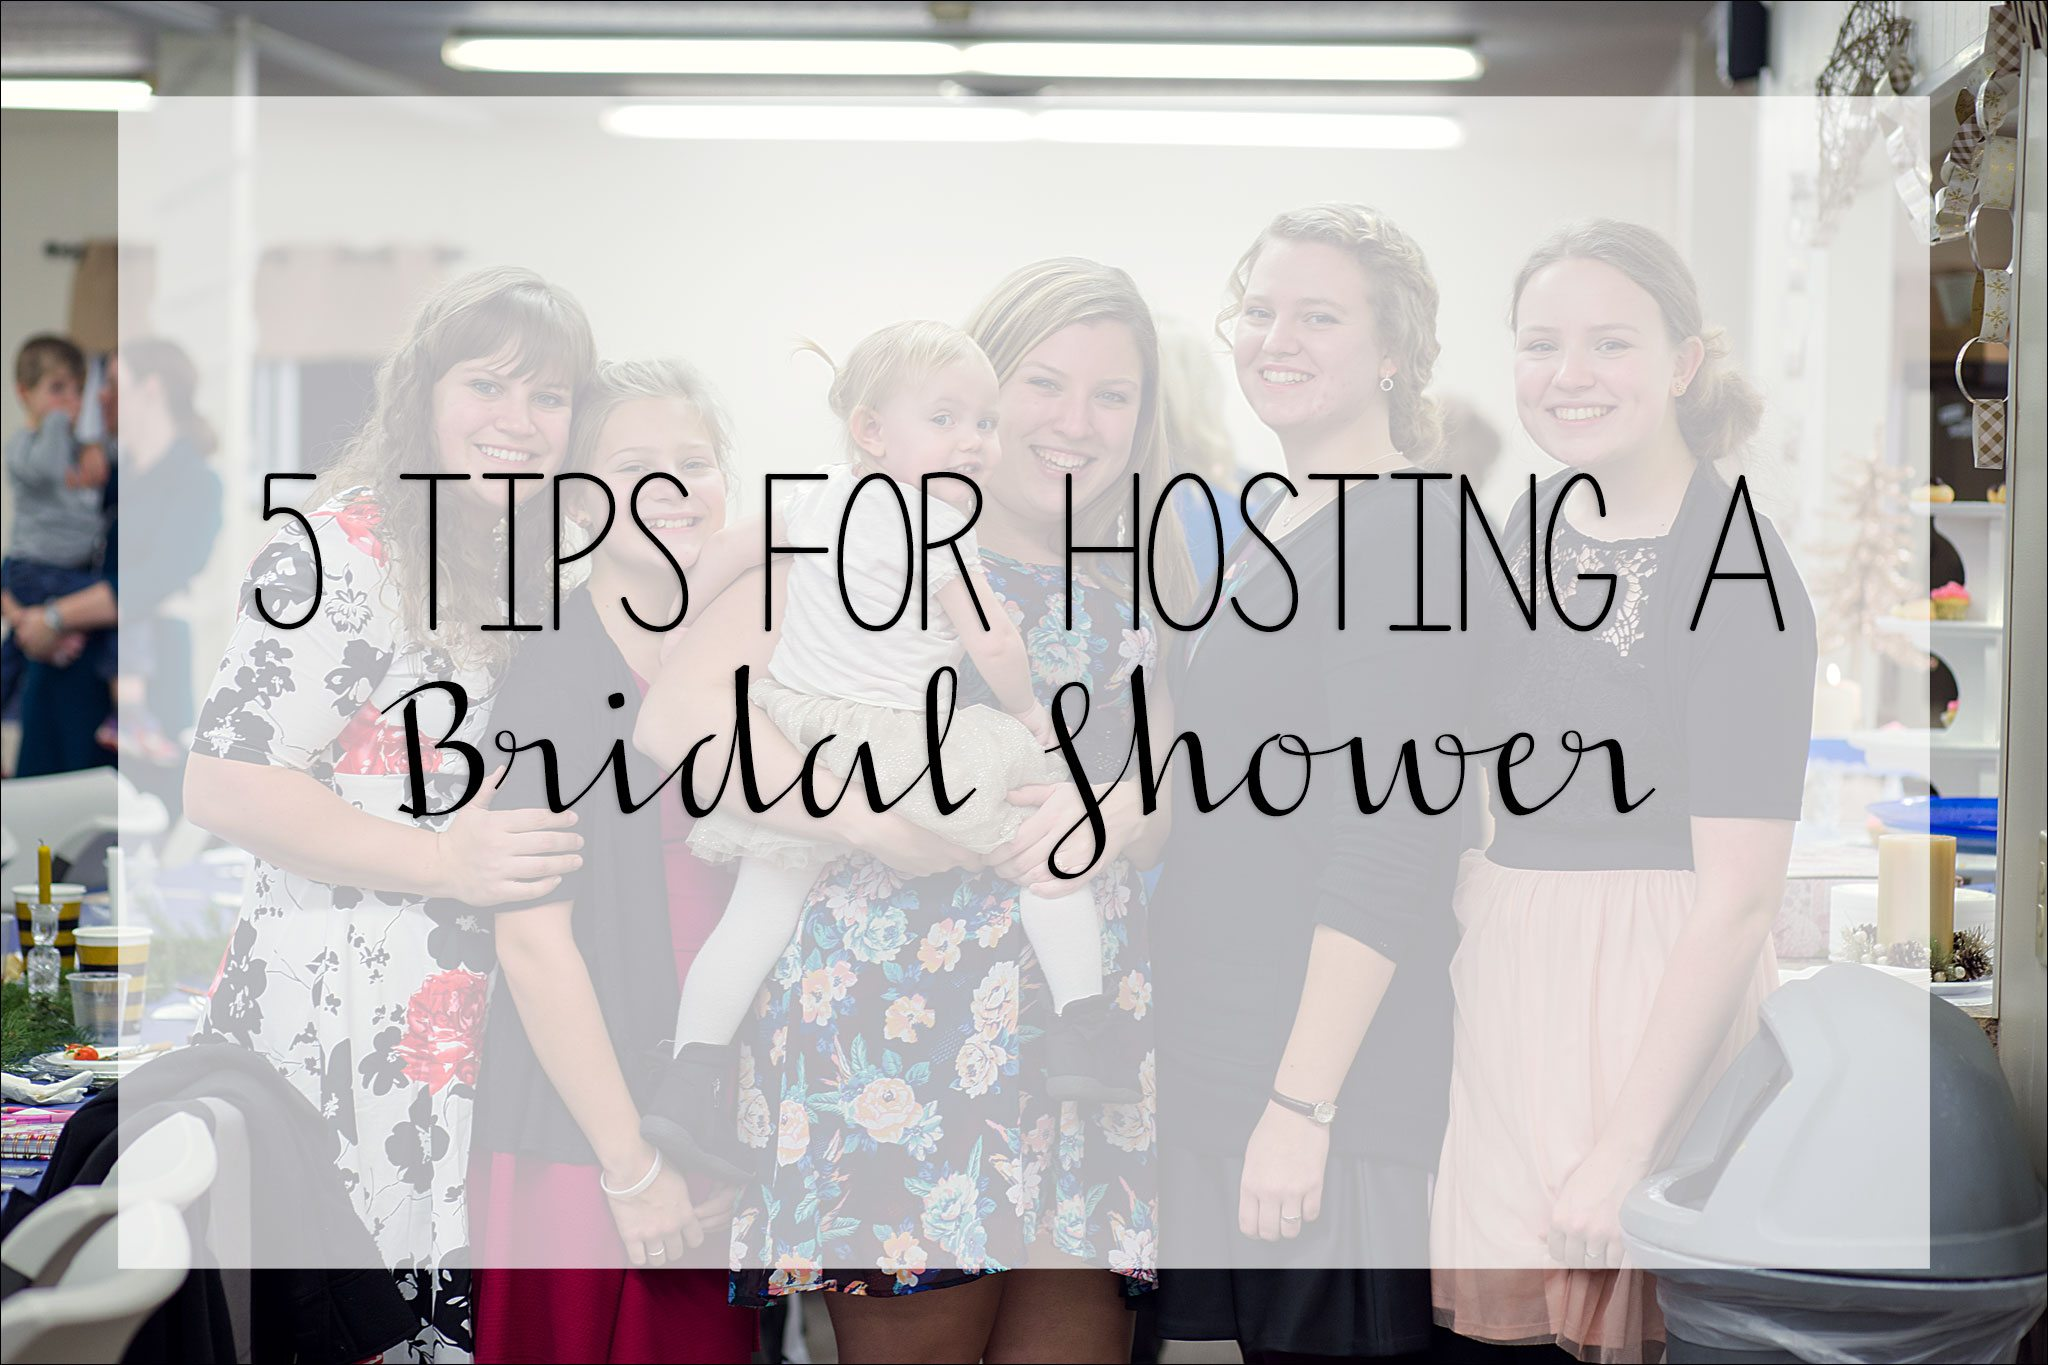 5 tips for hosting a bridal shower irwin pa What to buy for a bridal shower